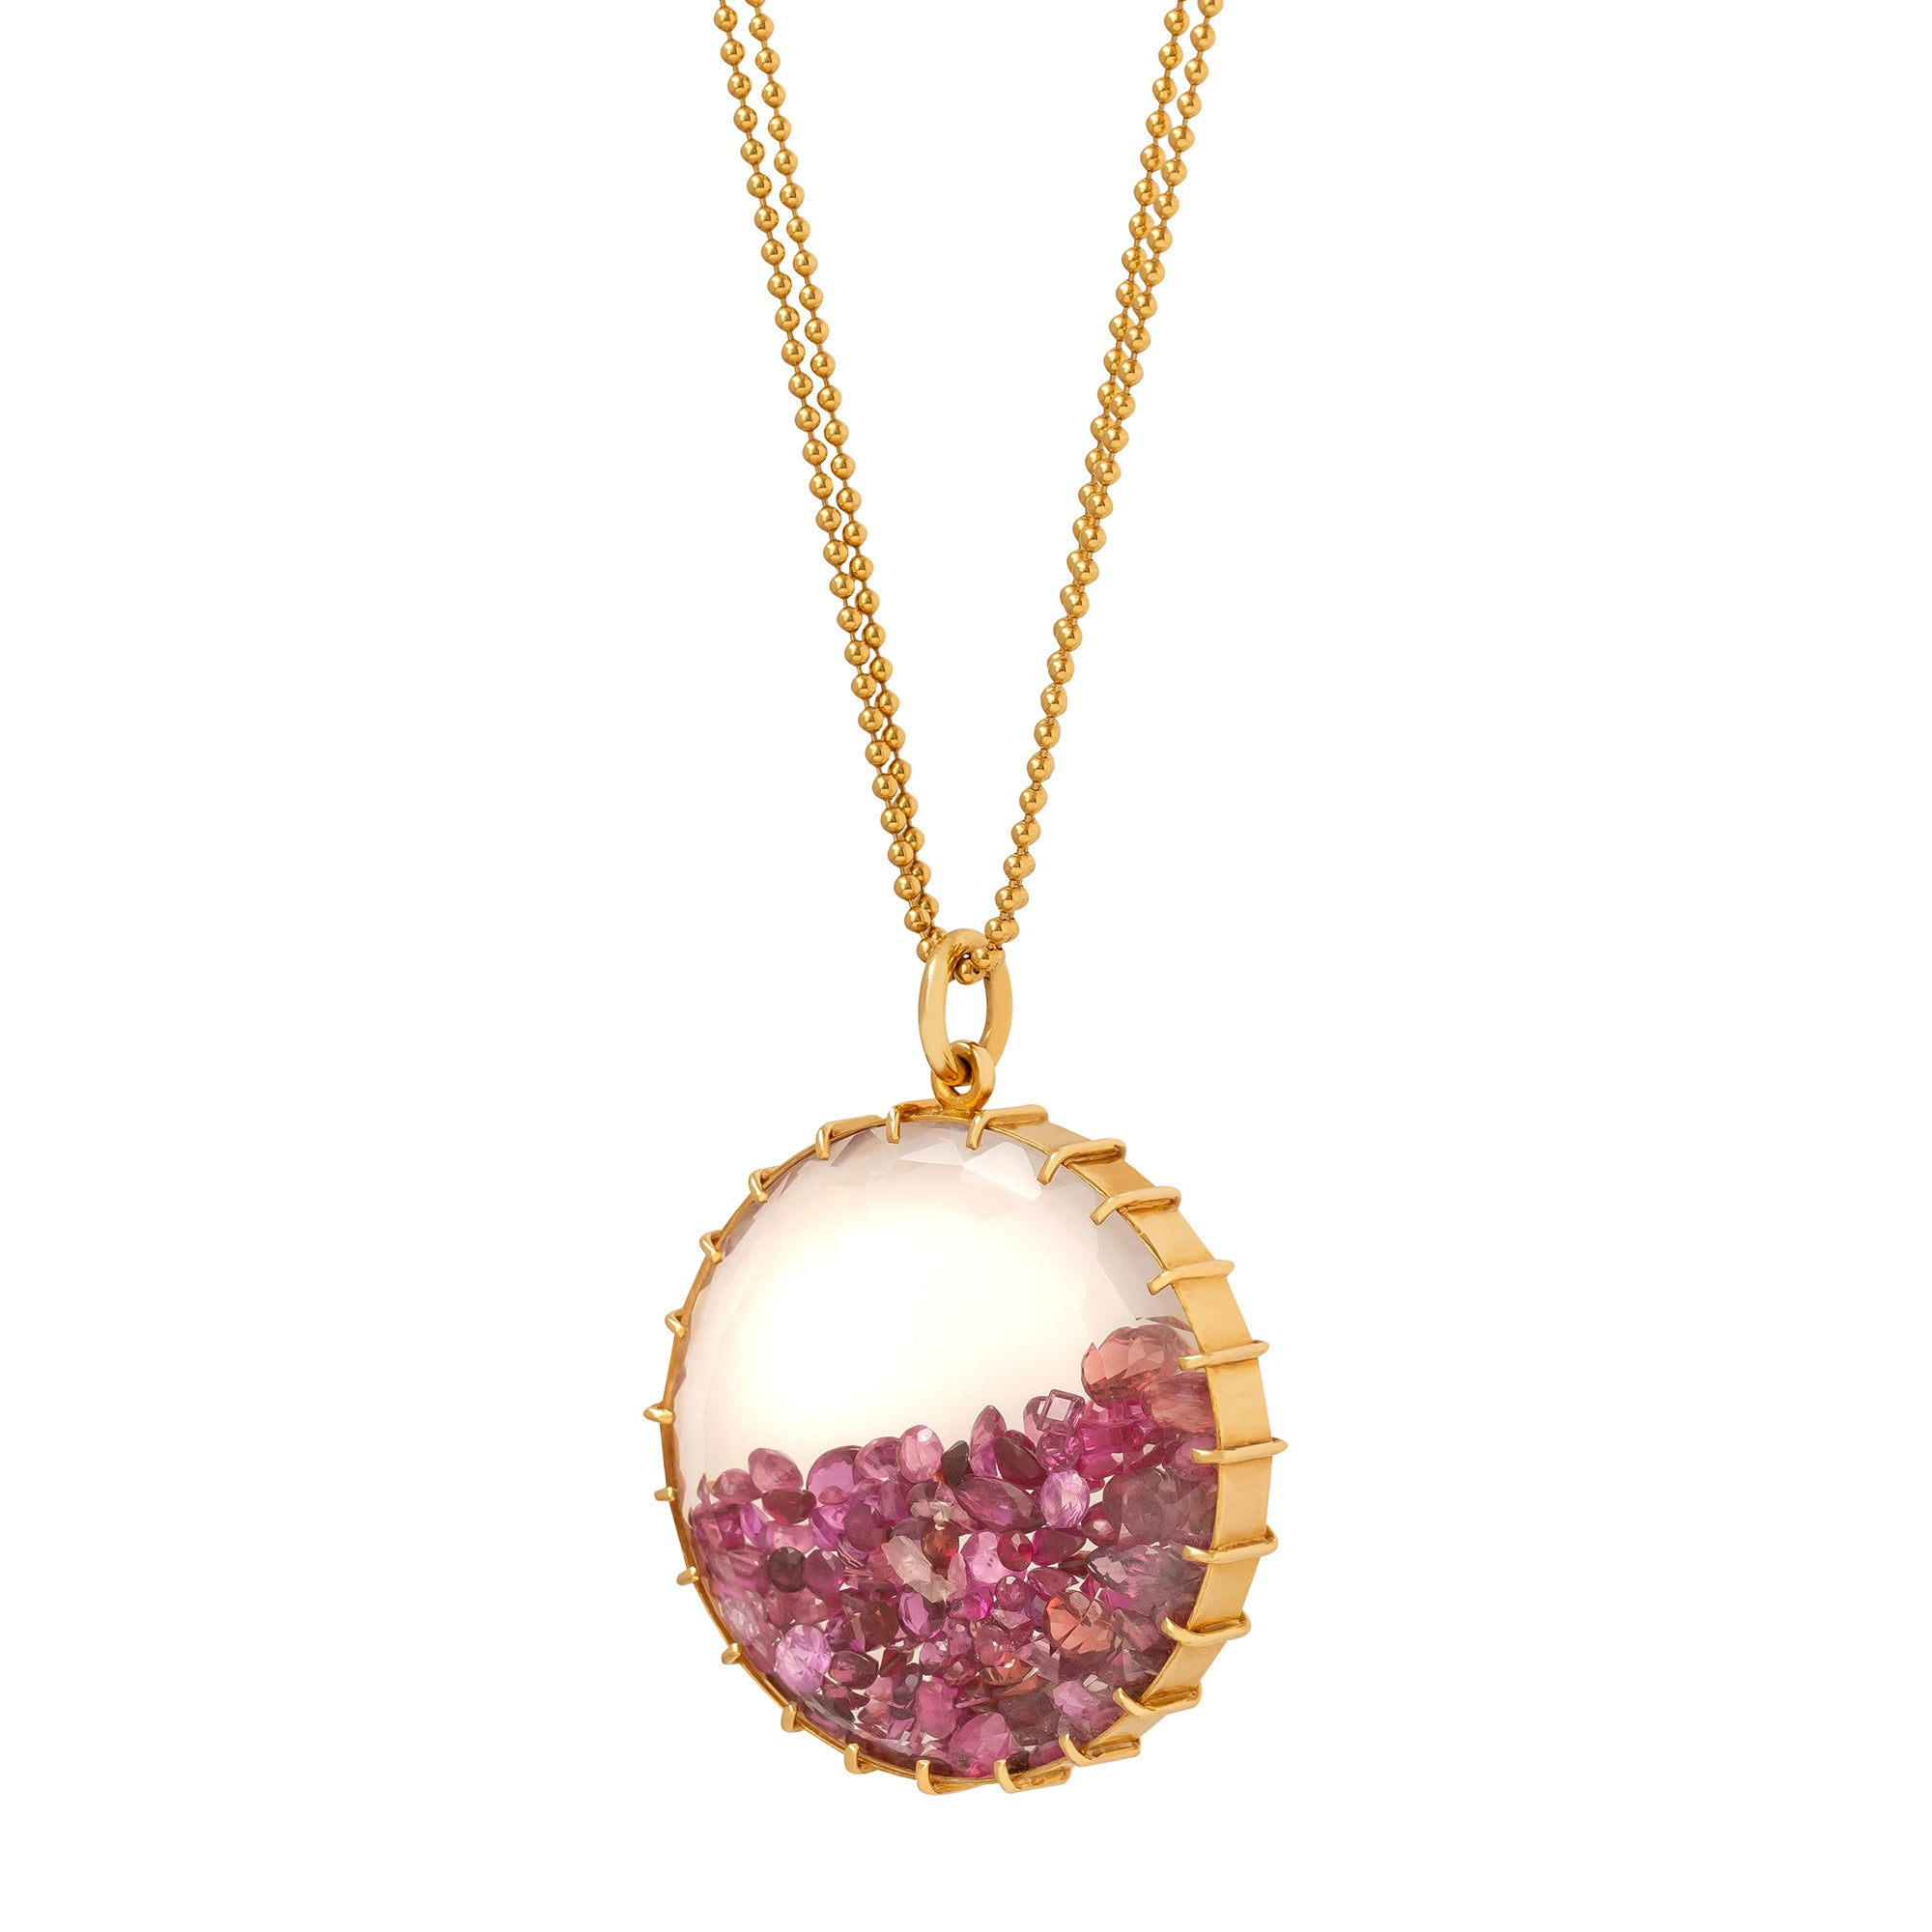 Renee Lewis Round Shake Necklace - Pink Sapphire & Ruby - Necklaces - Broken English Jewelry